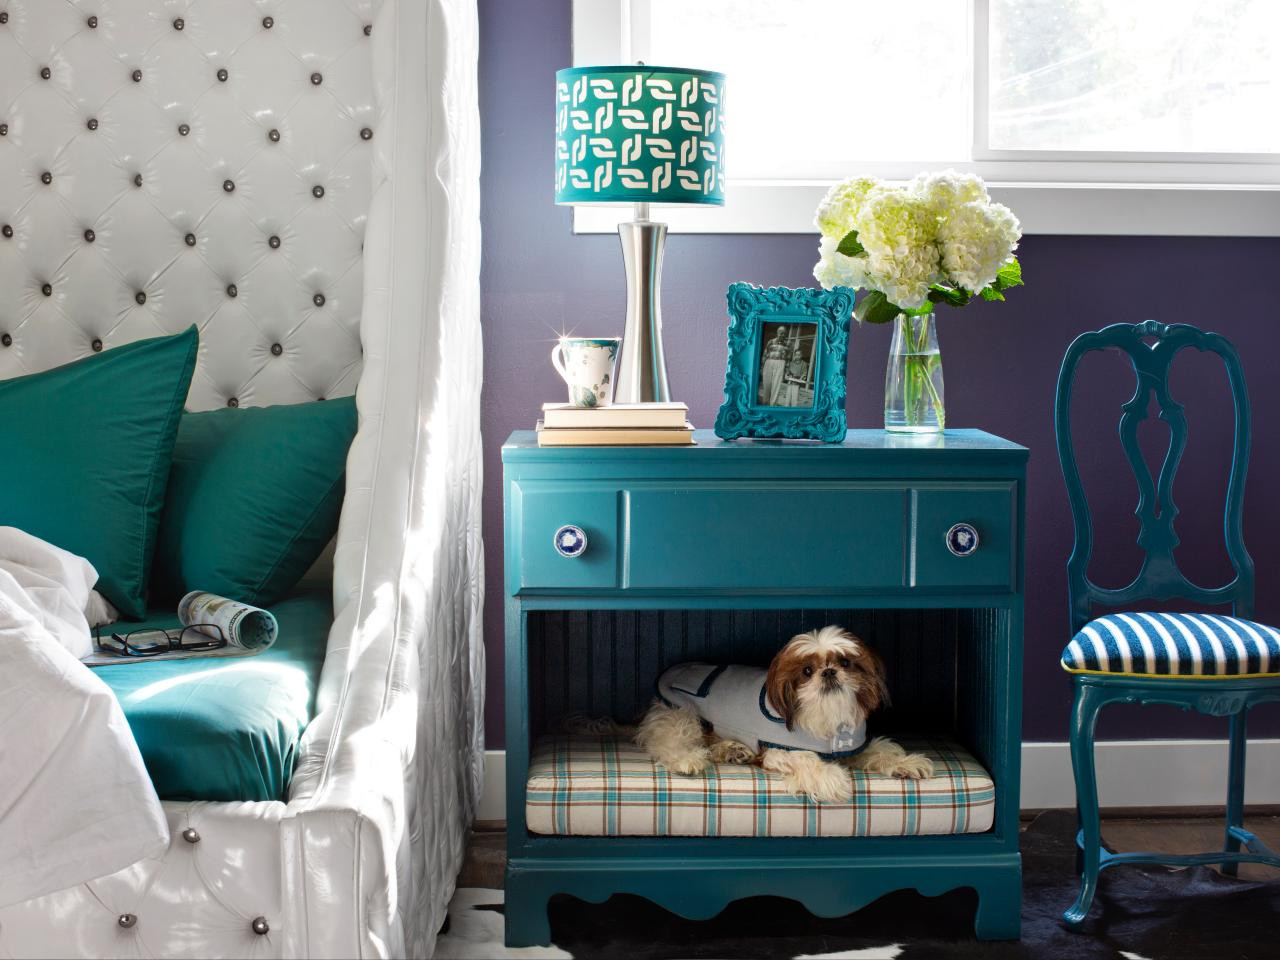 Best ideas about DIY Pet Beds . Save or Pin 16 Adorable DIY Pet Bed Ideas Style Motivation Now.